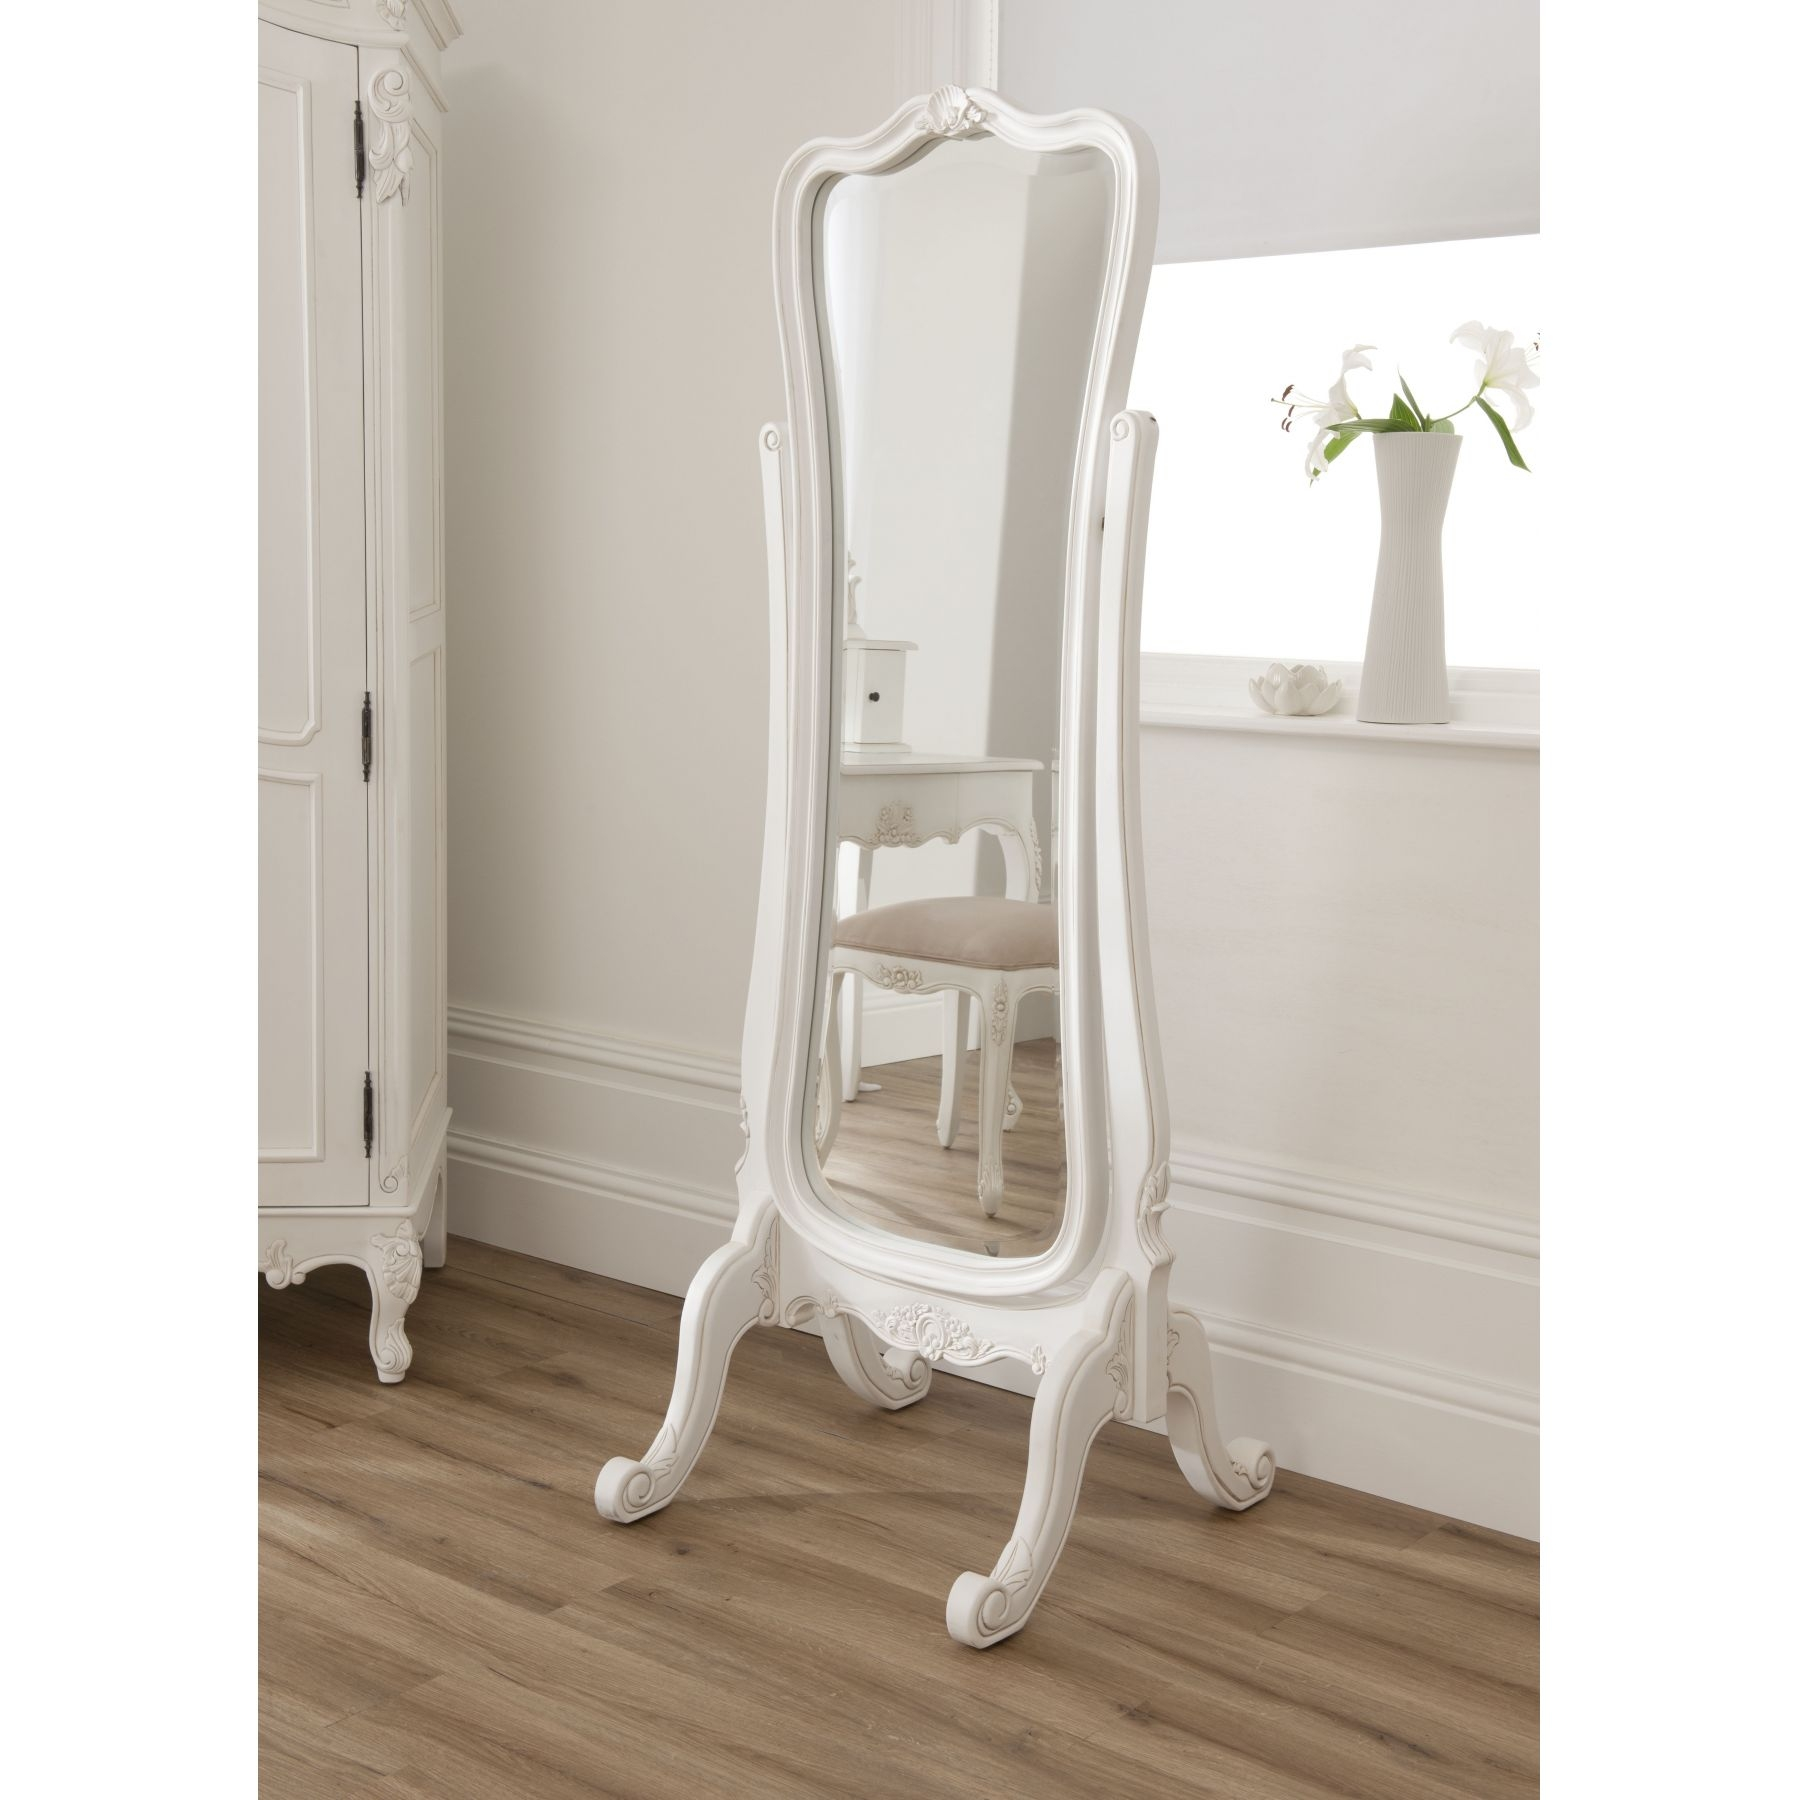 Free Standing Dressing Mirror Cheval Mirror Cheval Mirror Regarding Cheval Free Standing Mirror (Image 8 of 15)